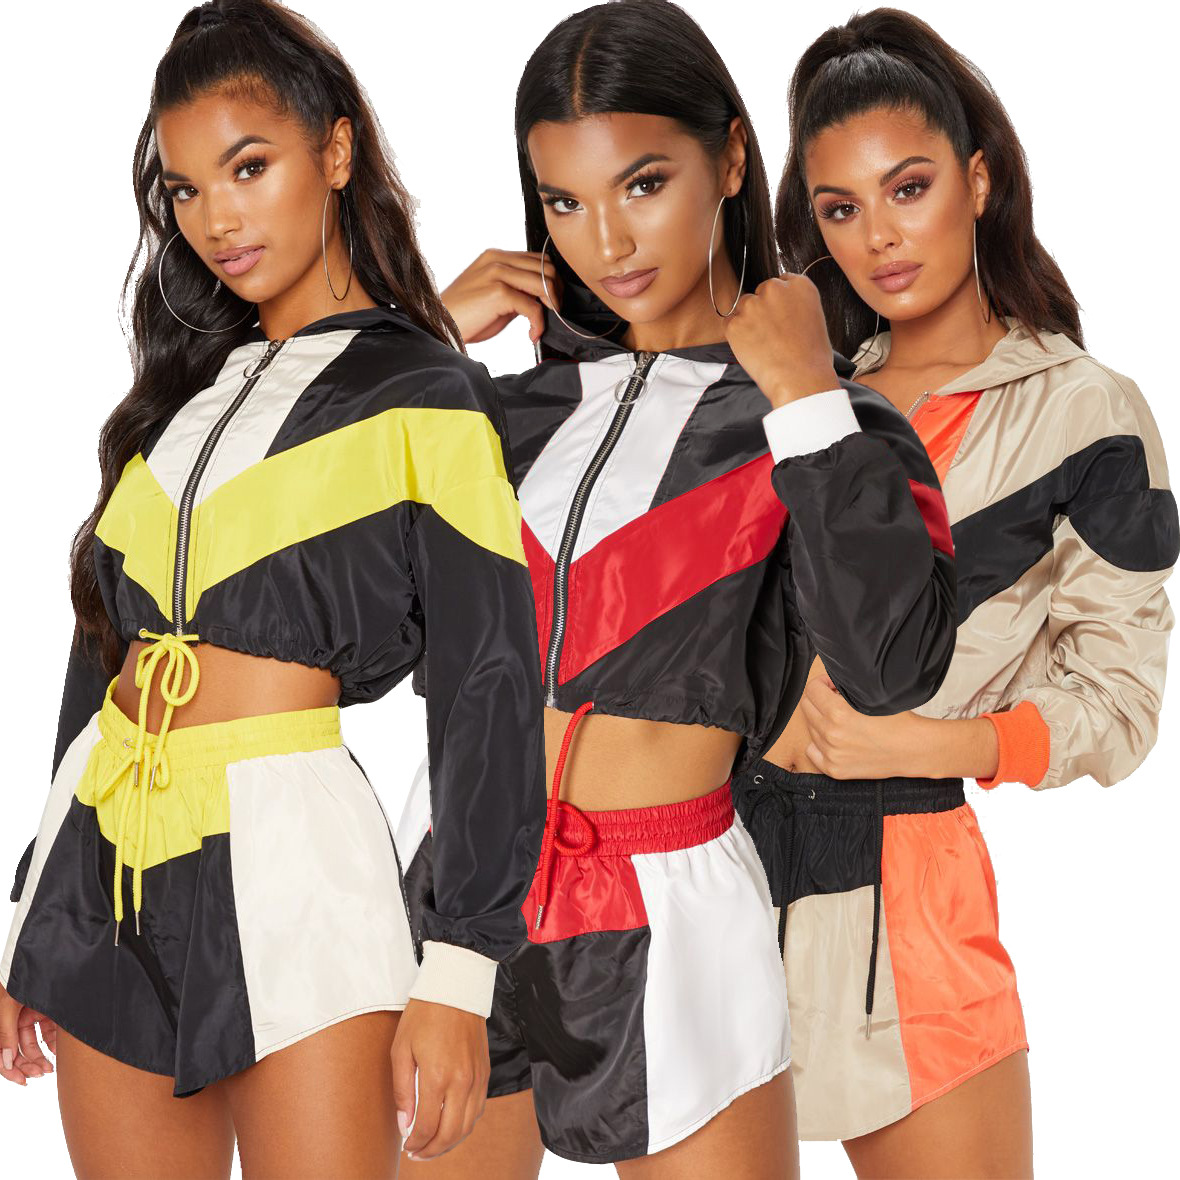 Platform Hot Sales Hot Selling Europe And America WOMEN'S Dress Mixed Colors Casual Loose-Fit Long Sleeve Shorts Sports Set